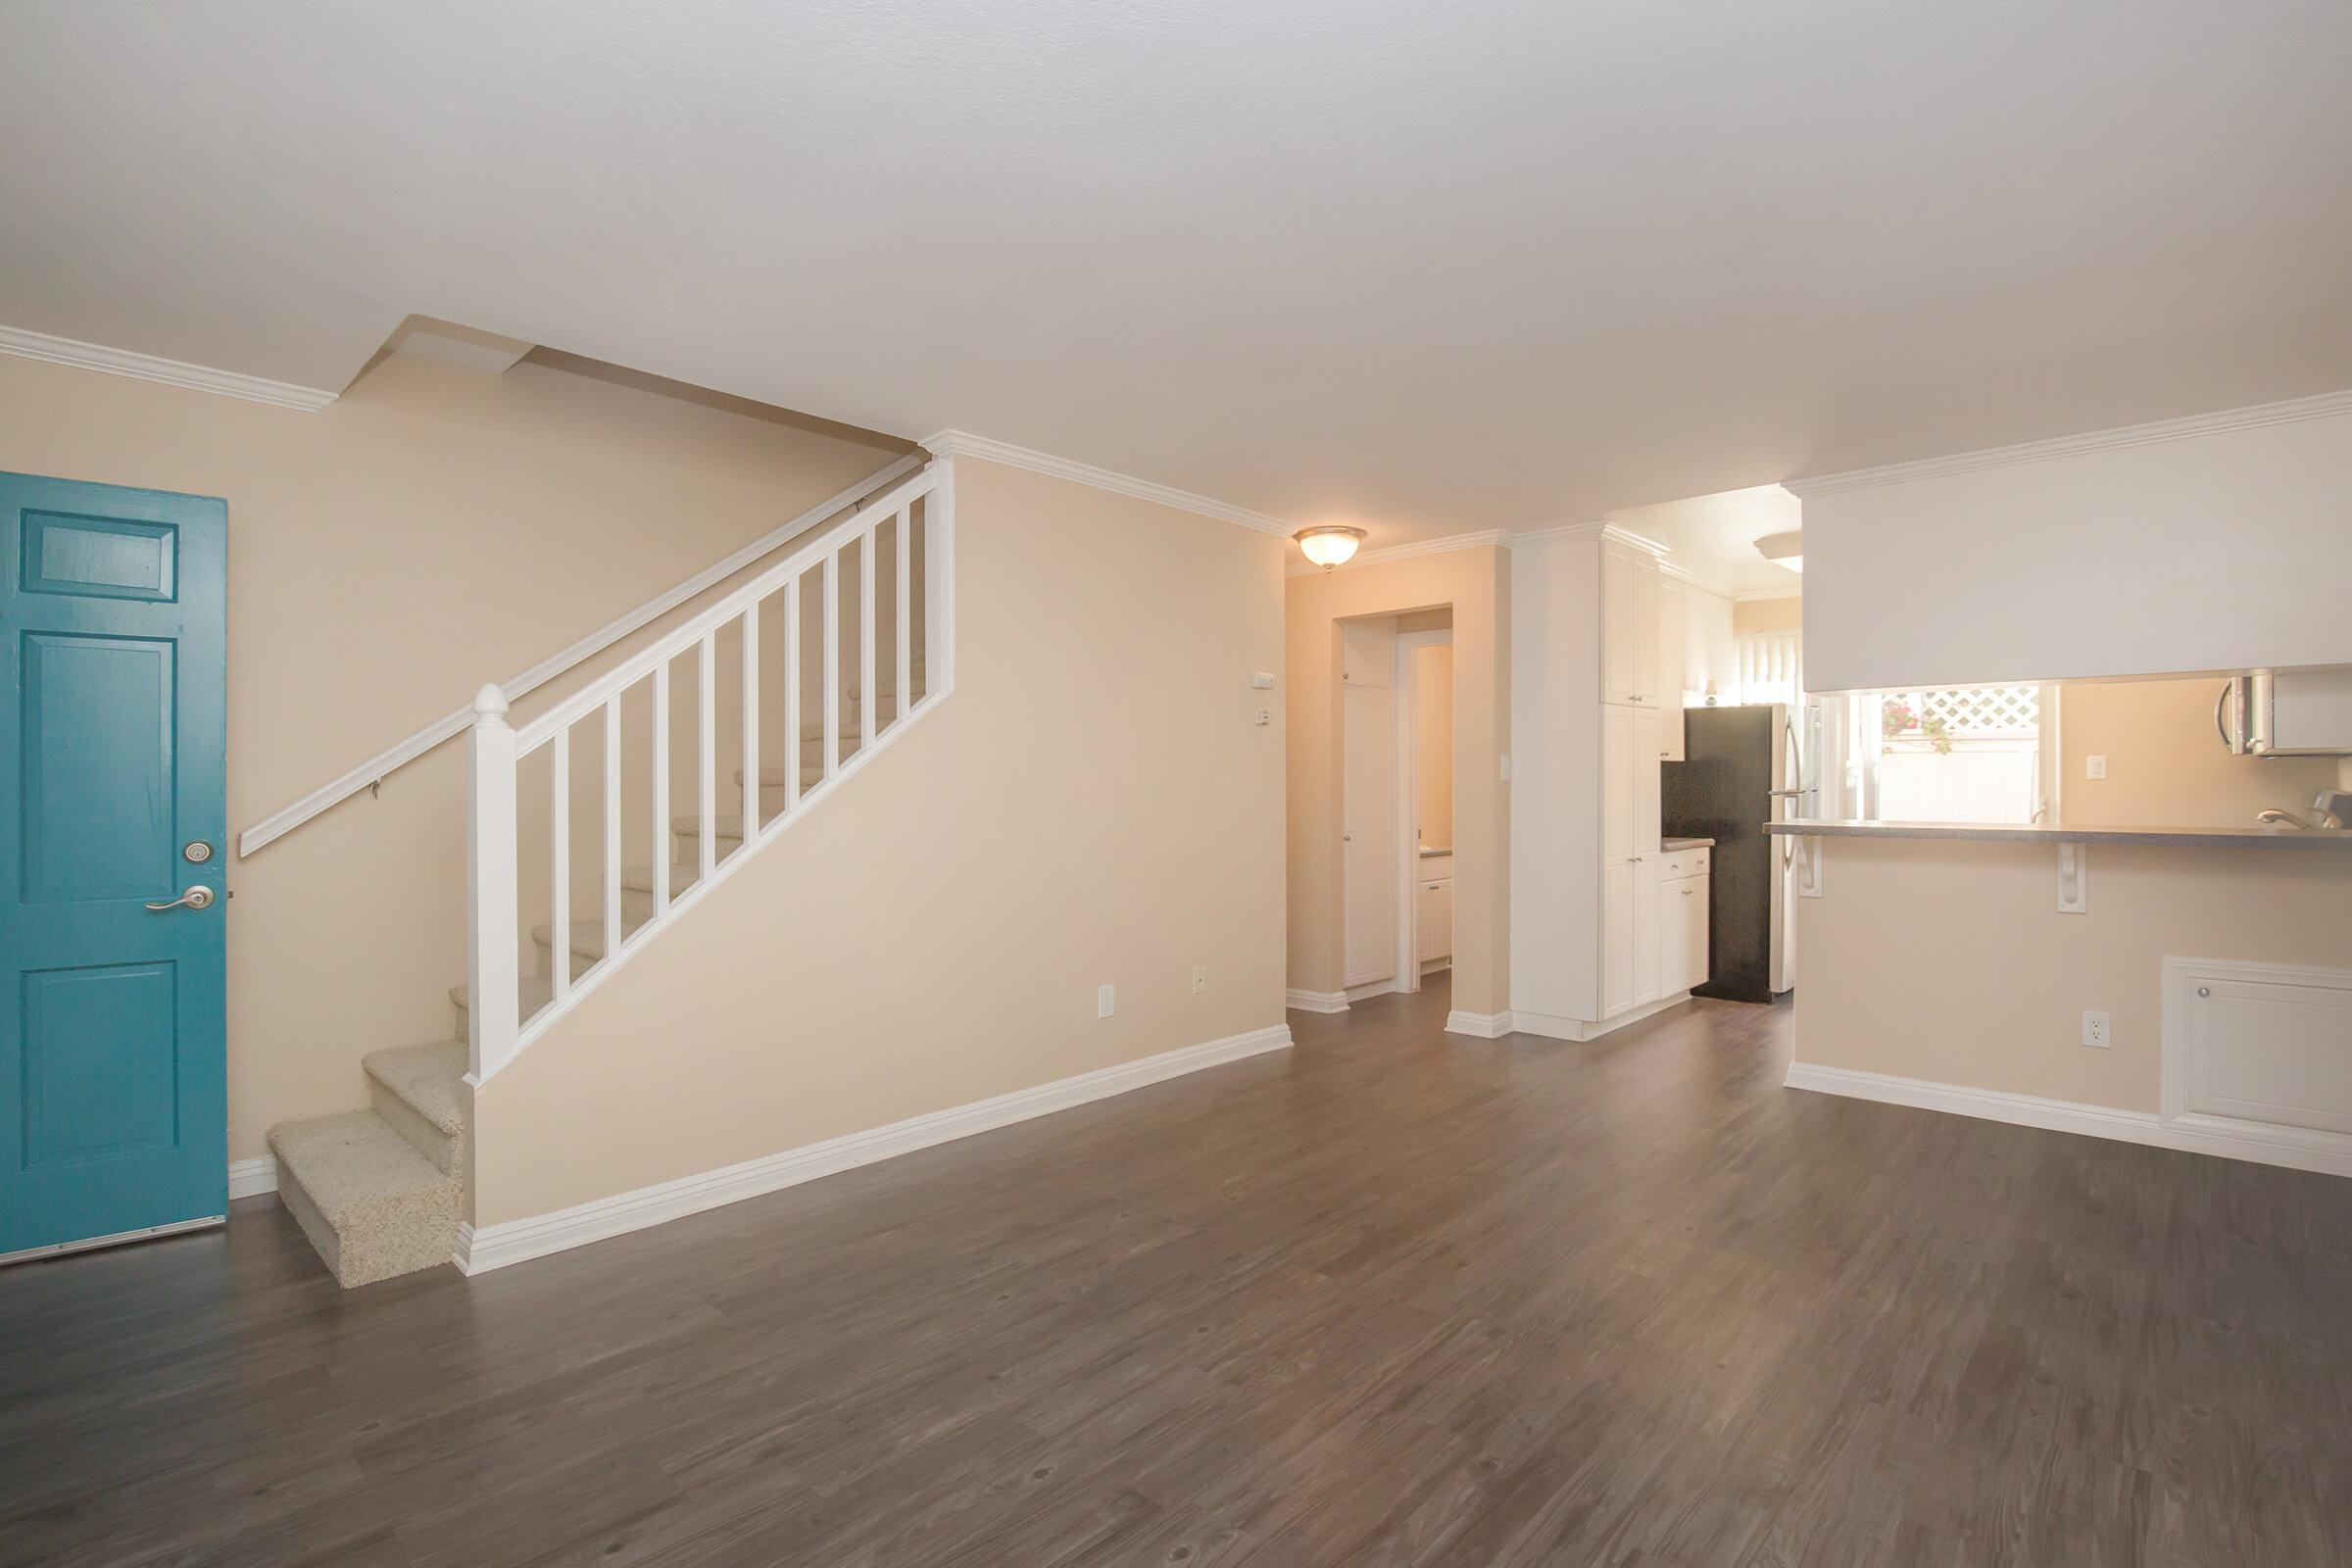 Vacant living room with stairs